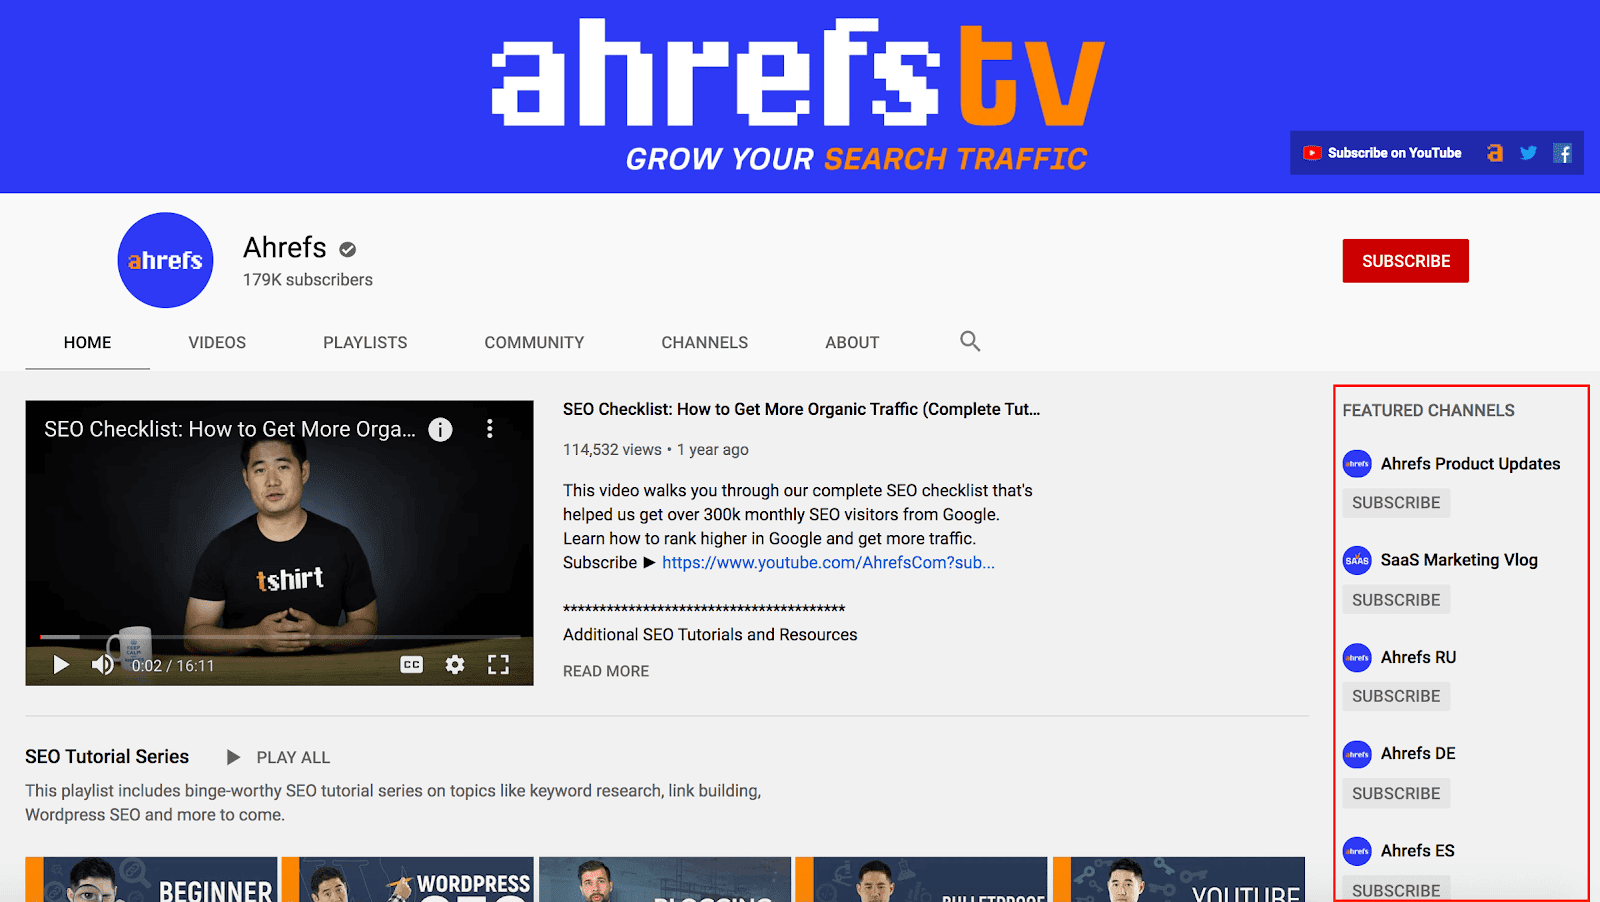 Ahrefs featured channels